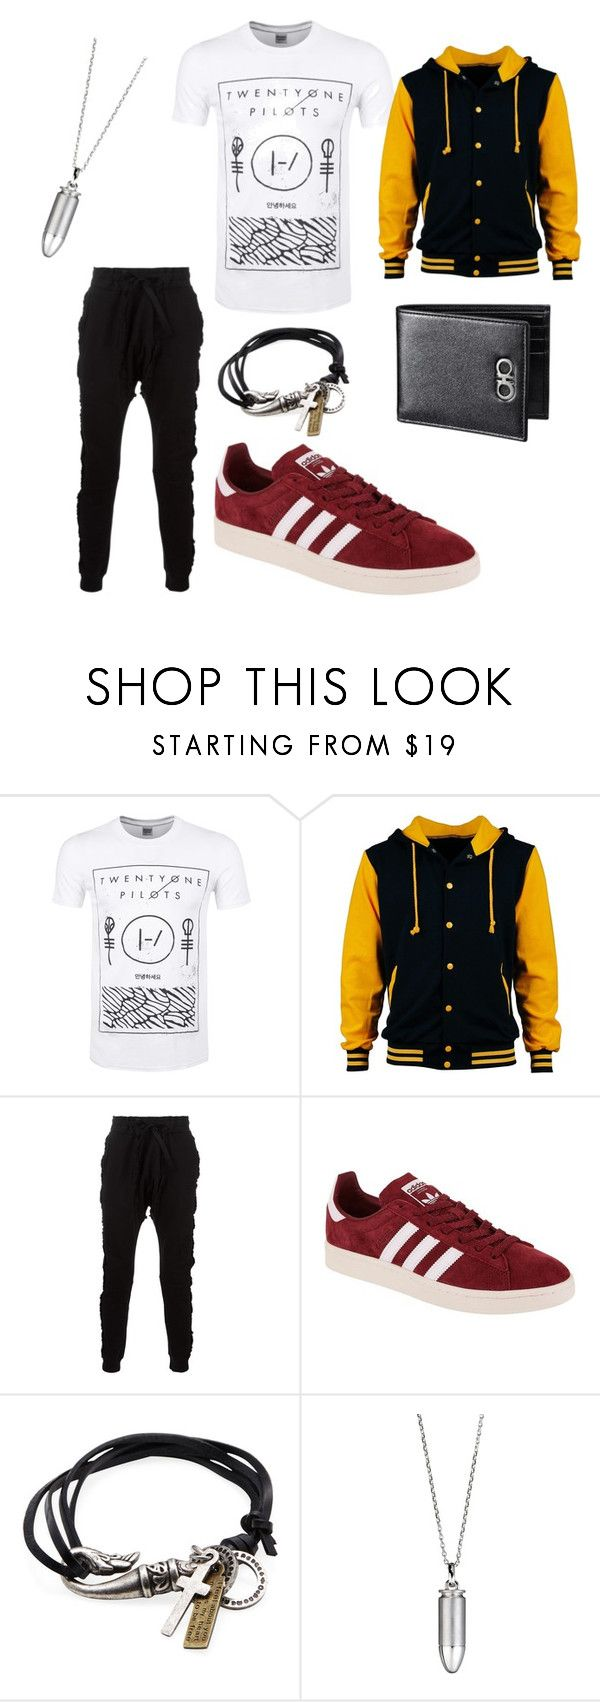 """I would wear this"" by brandon-stutz-klaas ❤ liked on Polyvore featuring Blood Brother, adidas Originals, Degs & Sal, Akillis, men's fashion and menswear"